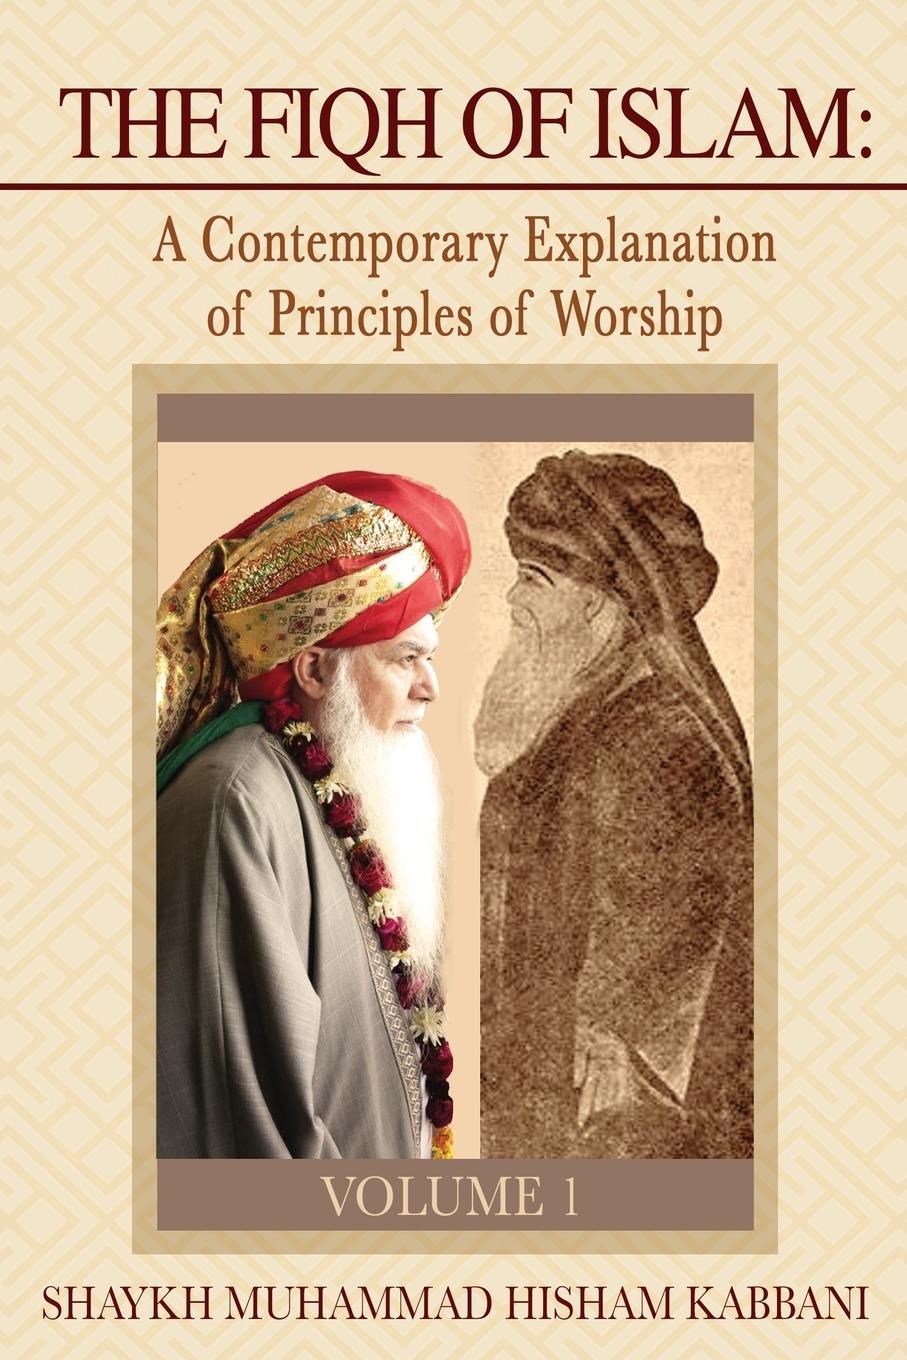 Shaykh Muhammad Hisham Kabbani The Fiqh of Islam. A Contemporary Explanation of Principles of Worship, Volume 1 shaykh mufti muhammad ubaidullah al asaadi fiqh waliullahi by shaykh mufti muhammad ubaidullah al asaadi